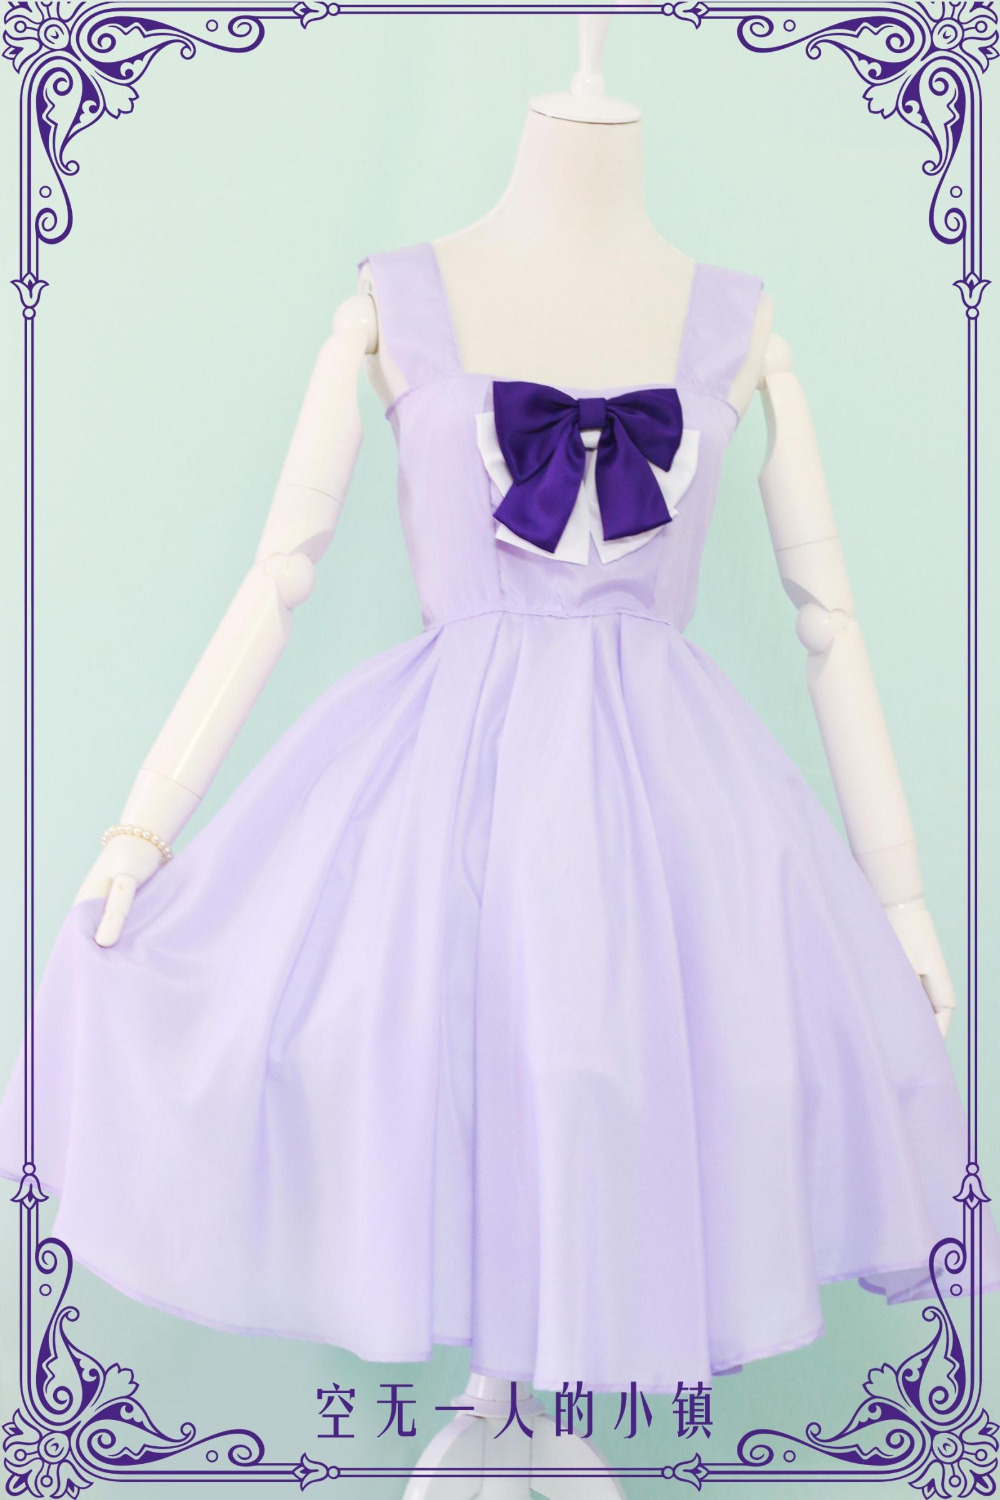 New Anime Chobits Eruda cosplay Costume purple dress